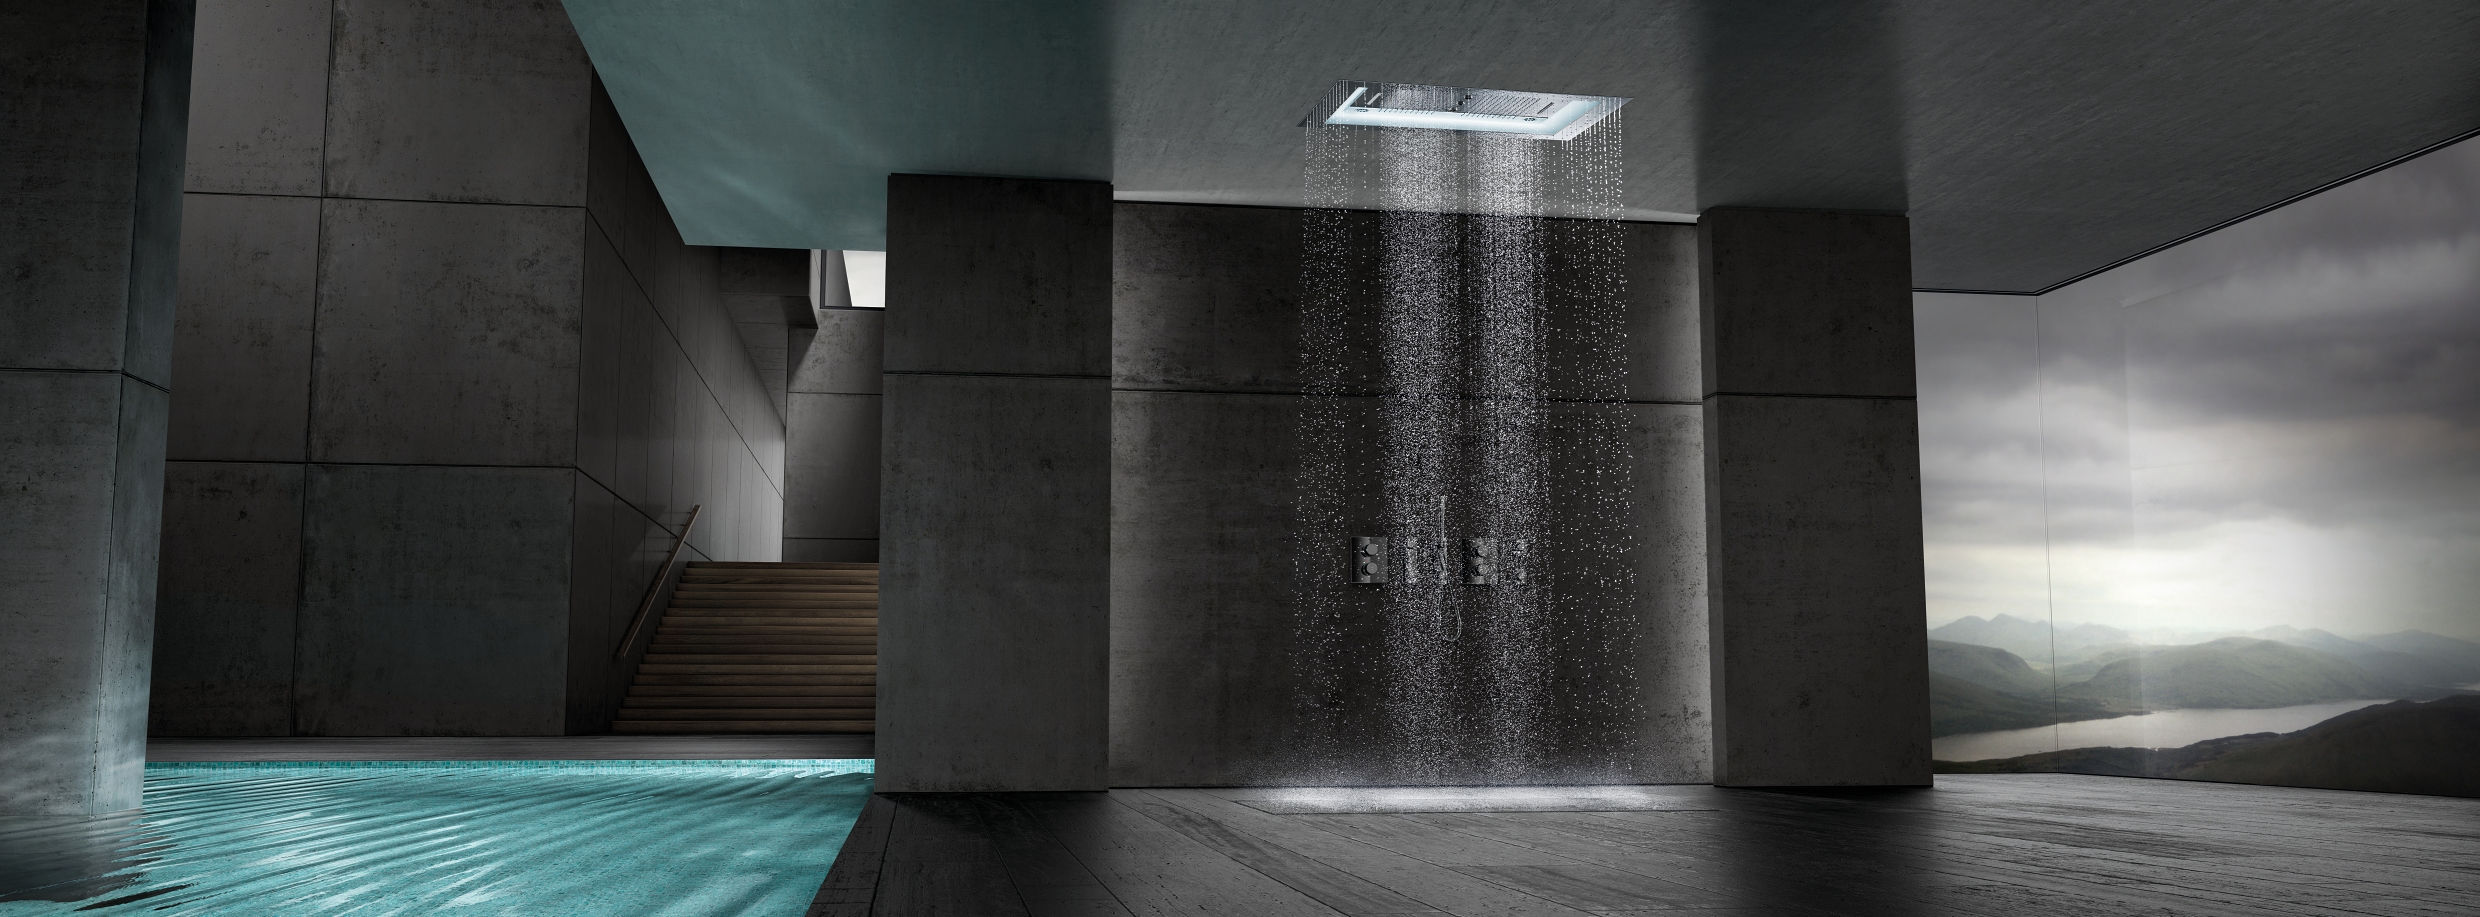 Recessed ceiling shower head rectangular rain with built in light AQUASYMPHONY RAINSHOWER